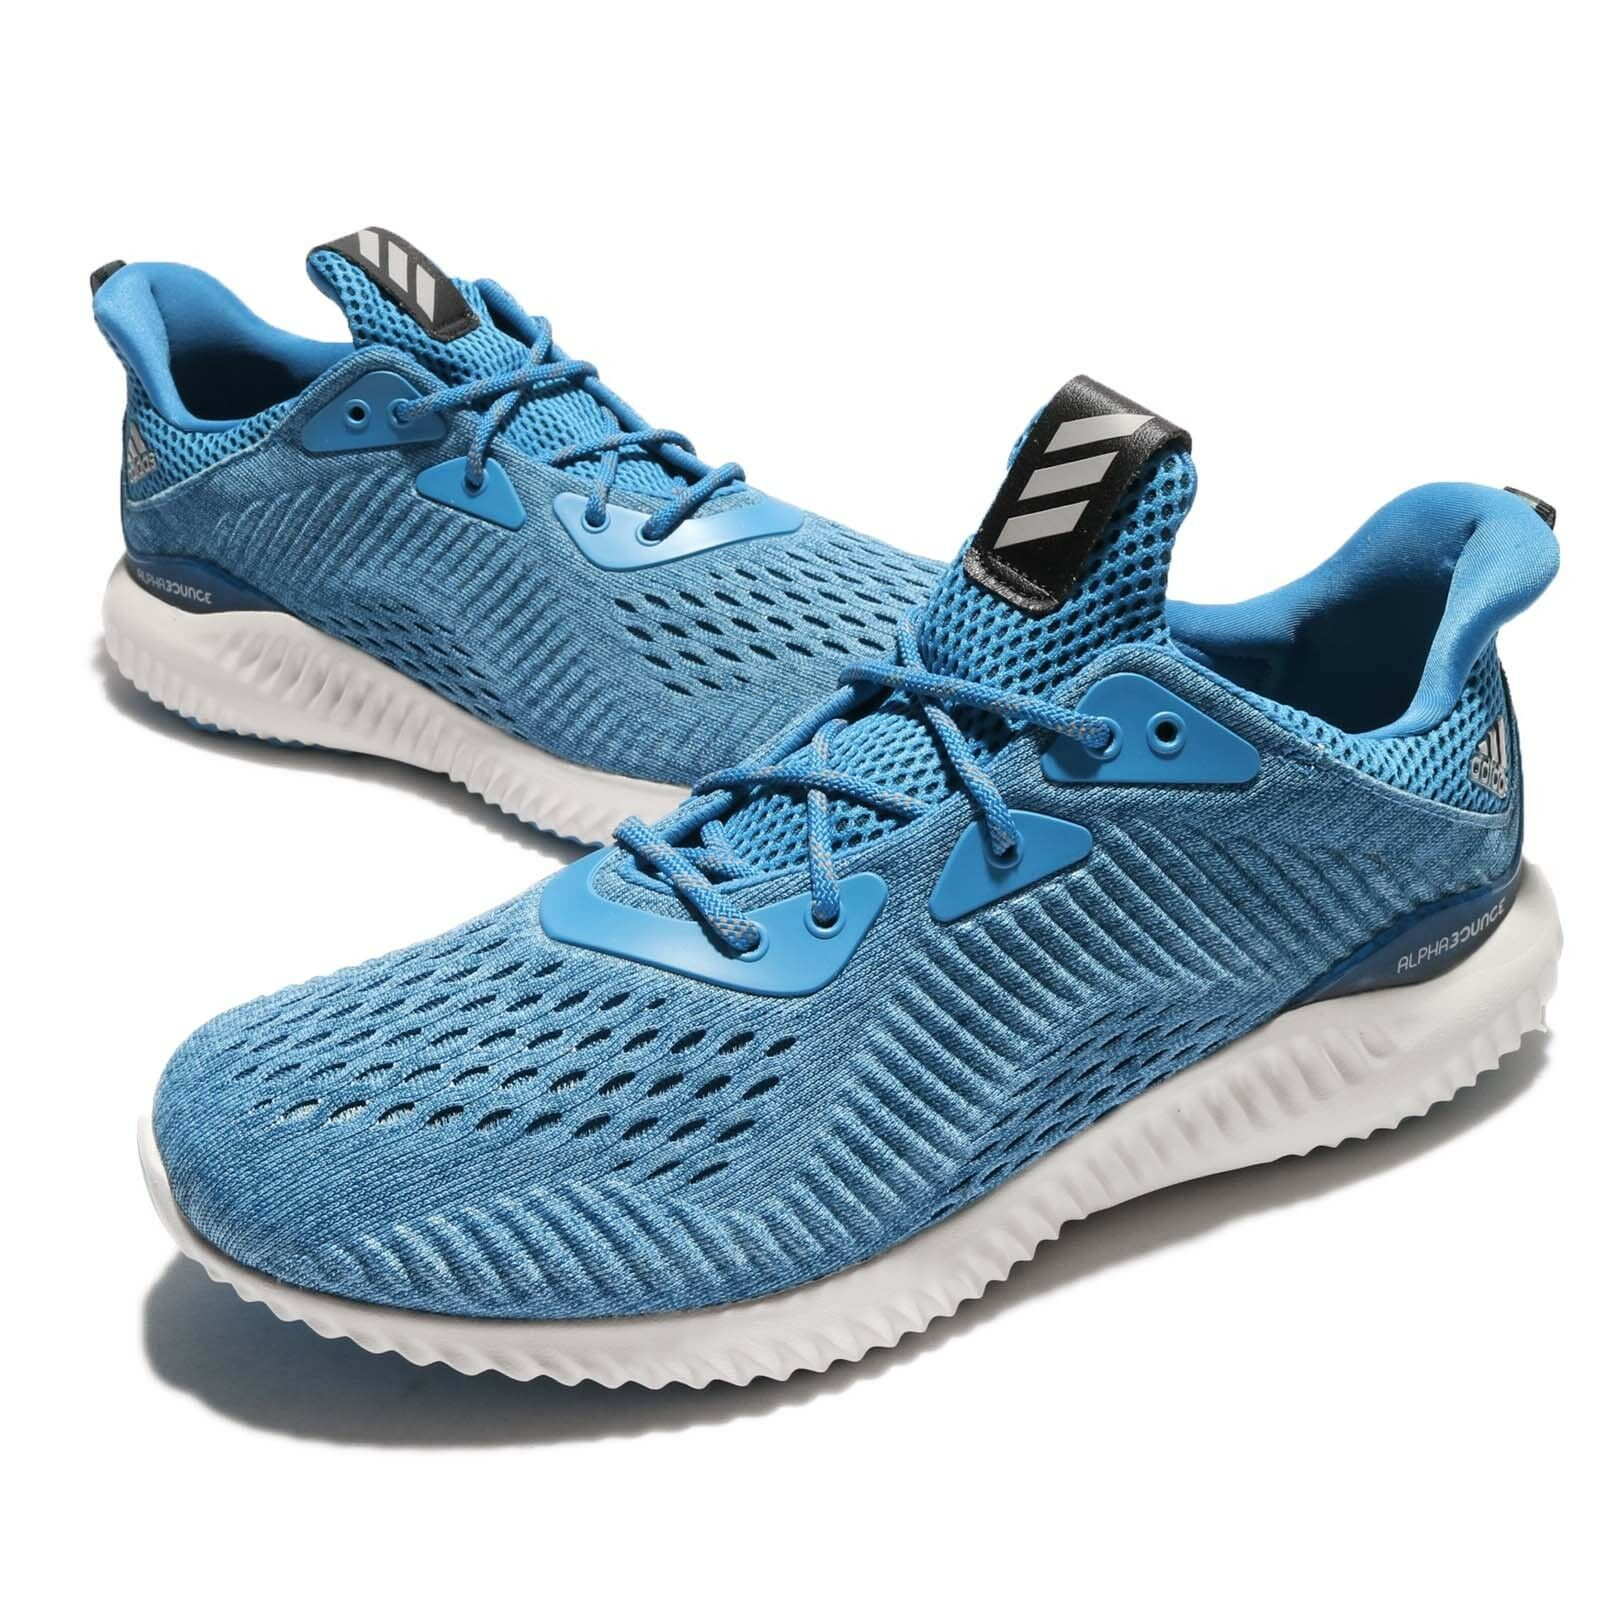 NEW MENS ADIDAS ALPHABOUNCE  EM SNEAKERS BY3846-SHOES-RUNNING-MULTIPLE SIZES